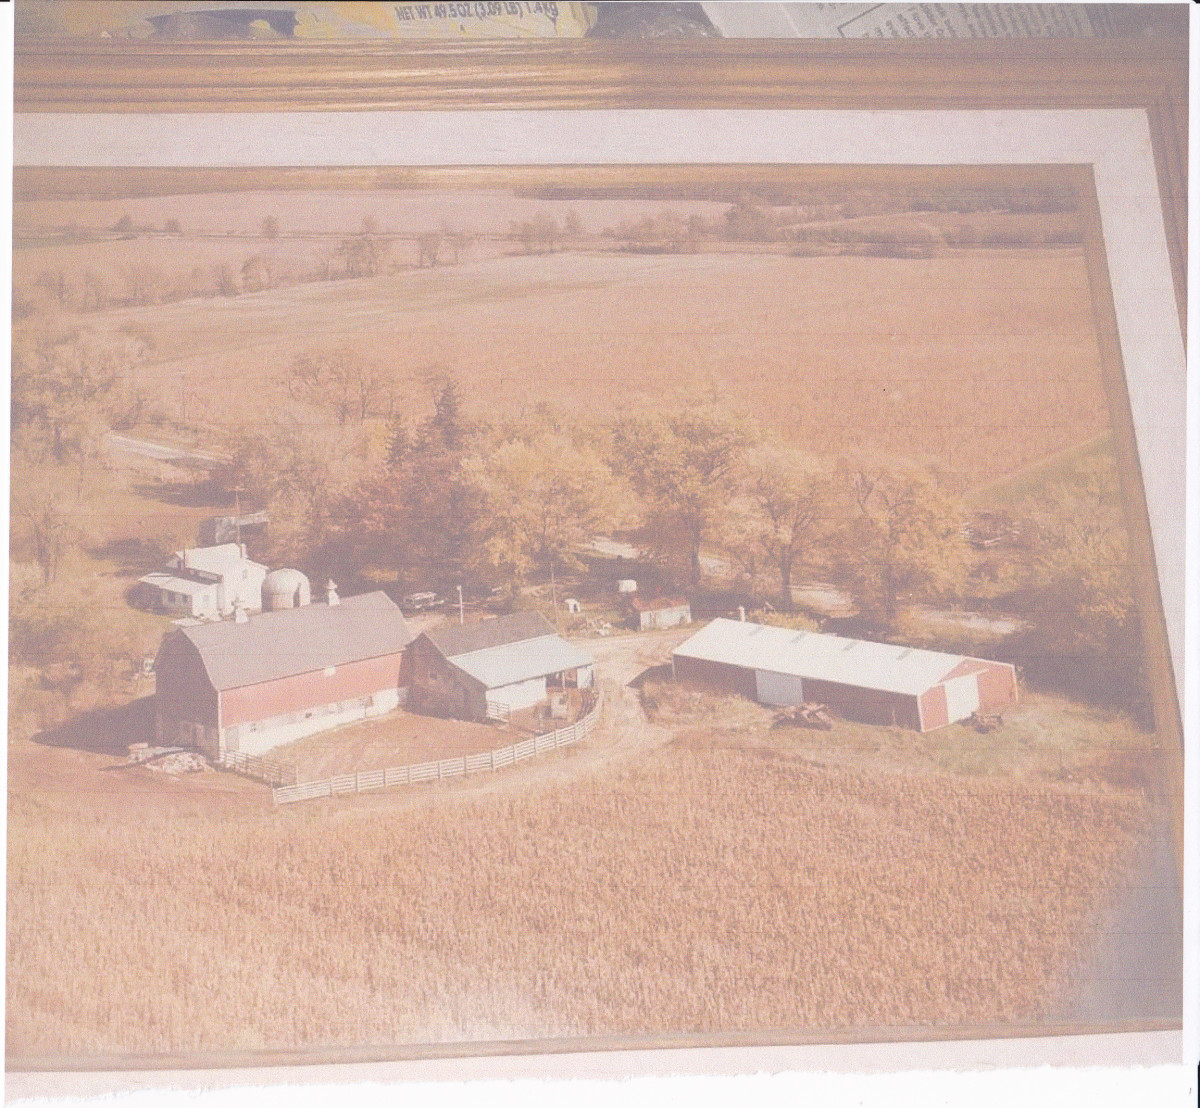 Our family farm.  Photo taken about 1975.  The long red building on the right is the machine shed for farm equipment.